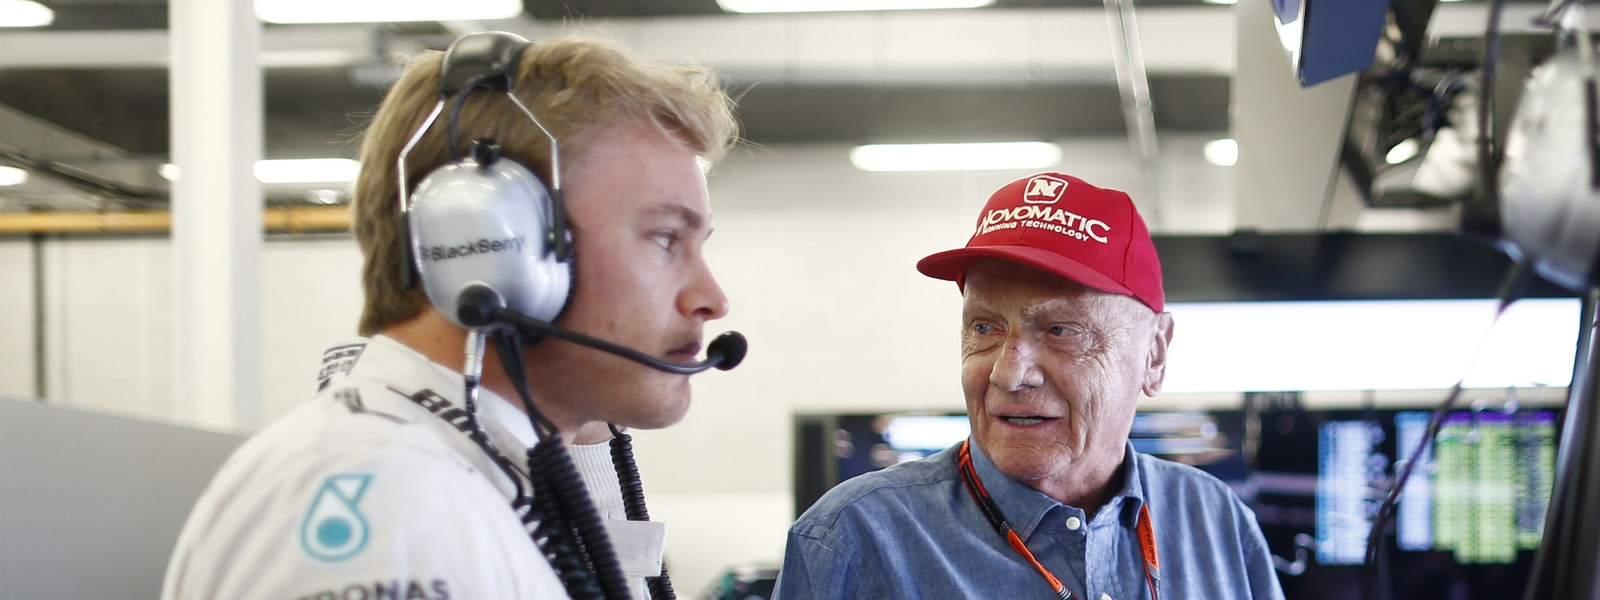 Motorsports: FIA Formula One World Championship 2015, Grand Prix of Great Britain,  #6 Nico Rosberg (GER, Mercedes AMG Petronas Formula One Team), Niki Lauda (AUT, Mercedes AMG Petronas F1 Team),  *** Local Caption *** +++ www.hoch-zwei.net +++ copyright: HOCH ZWEI +++